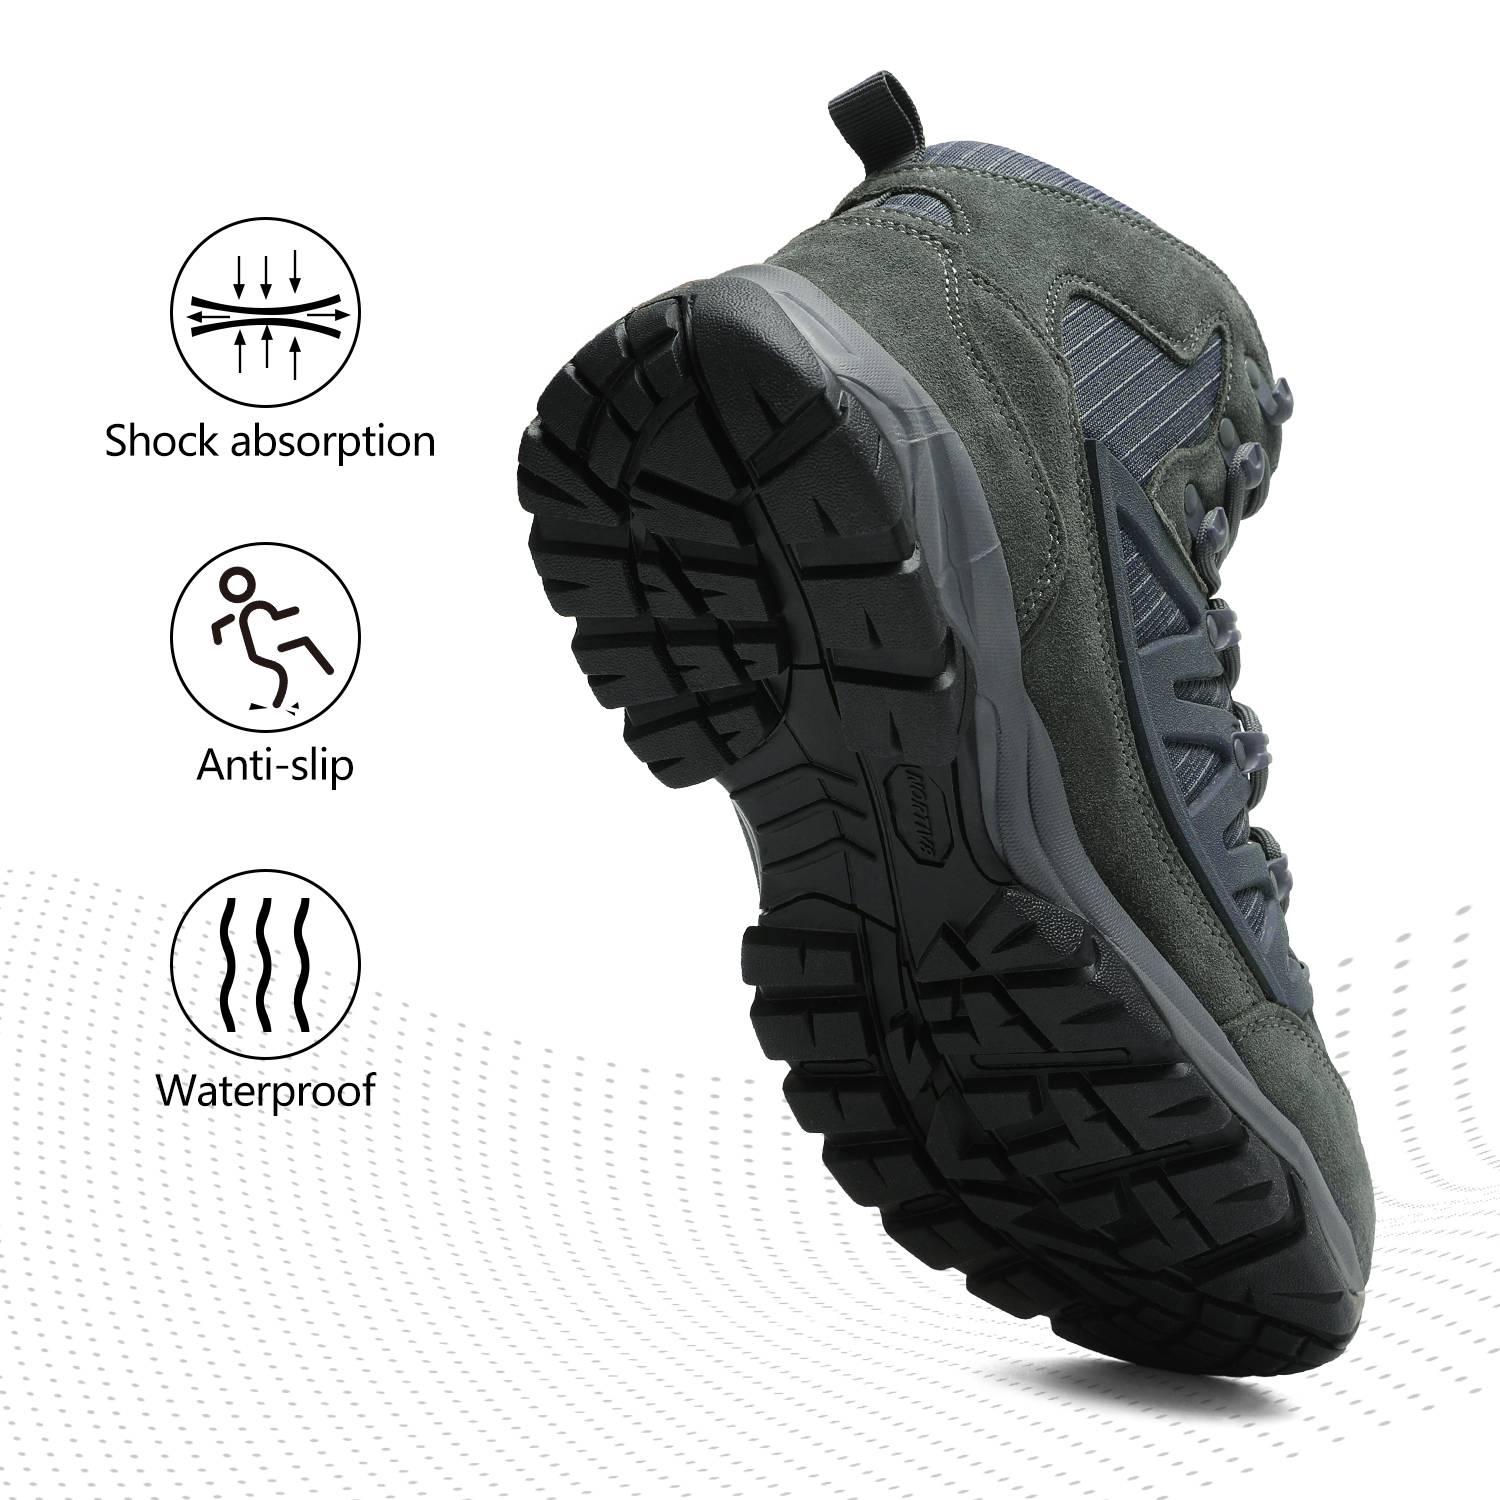 NORTIV-8-Men-039-s-Ankle-Waterproof-Hiking-Boots-Lightweight-Backpacking-Work-Shoes thumbnail 50